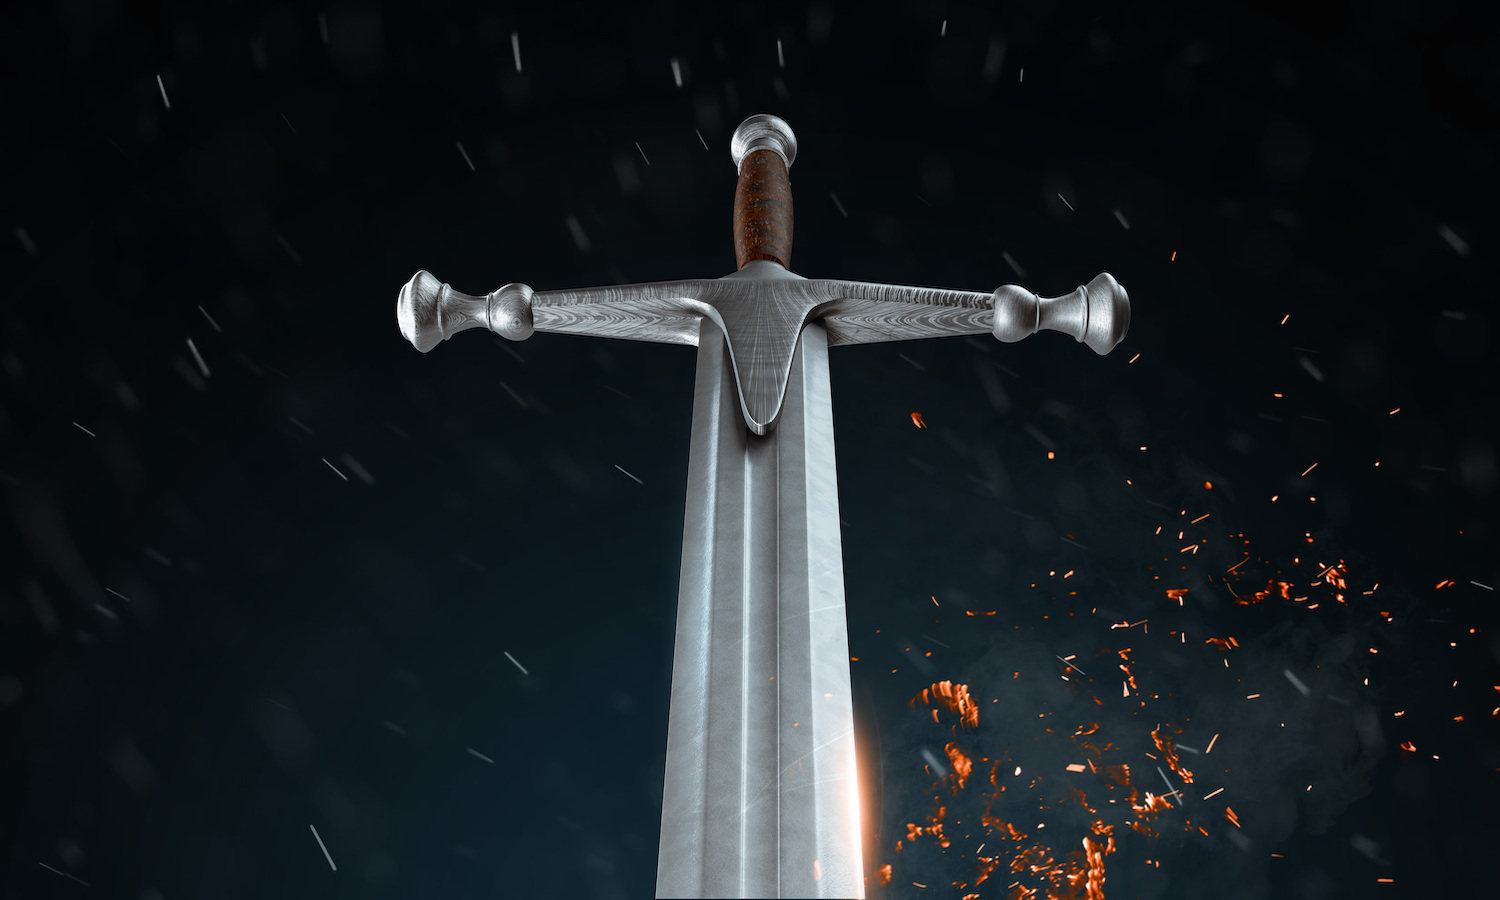 The Crucible - If you are looking for quick short stories online, this one is for you. The Crucible of Steel is a game of wits. Of luck. Of Chance. Opponents face each other, one-on-one. A sword in the middle of the arena, a dagger at their side. The rules are simple, but the game is hard. Only a lone champion can emerge. Only one can survive.